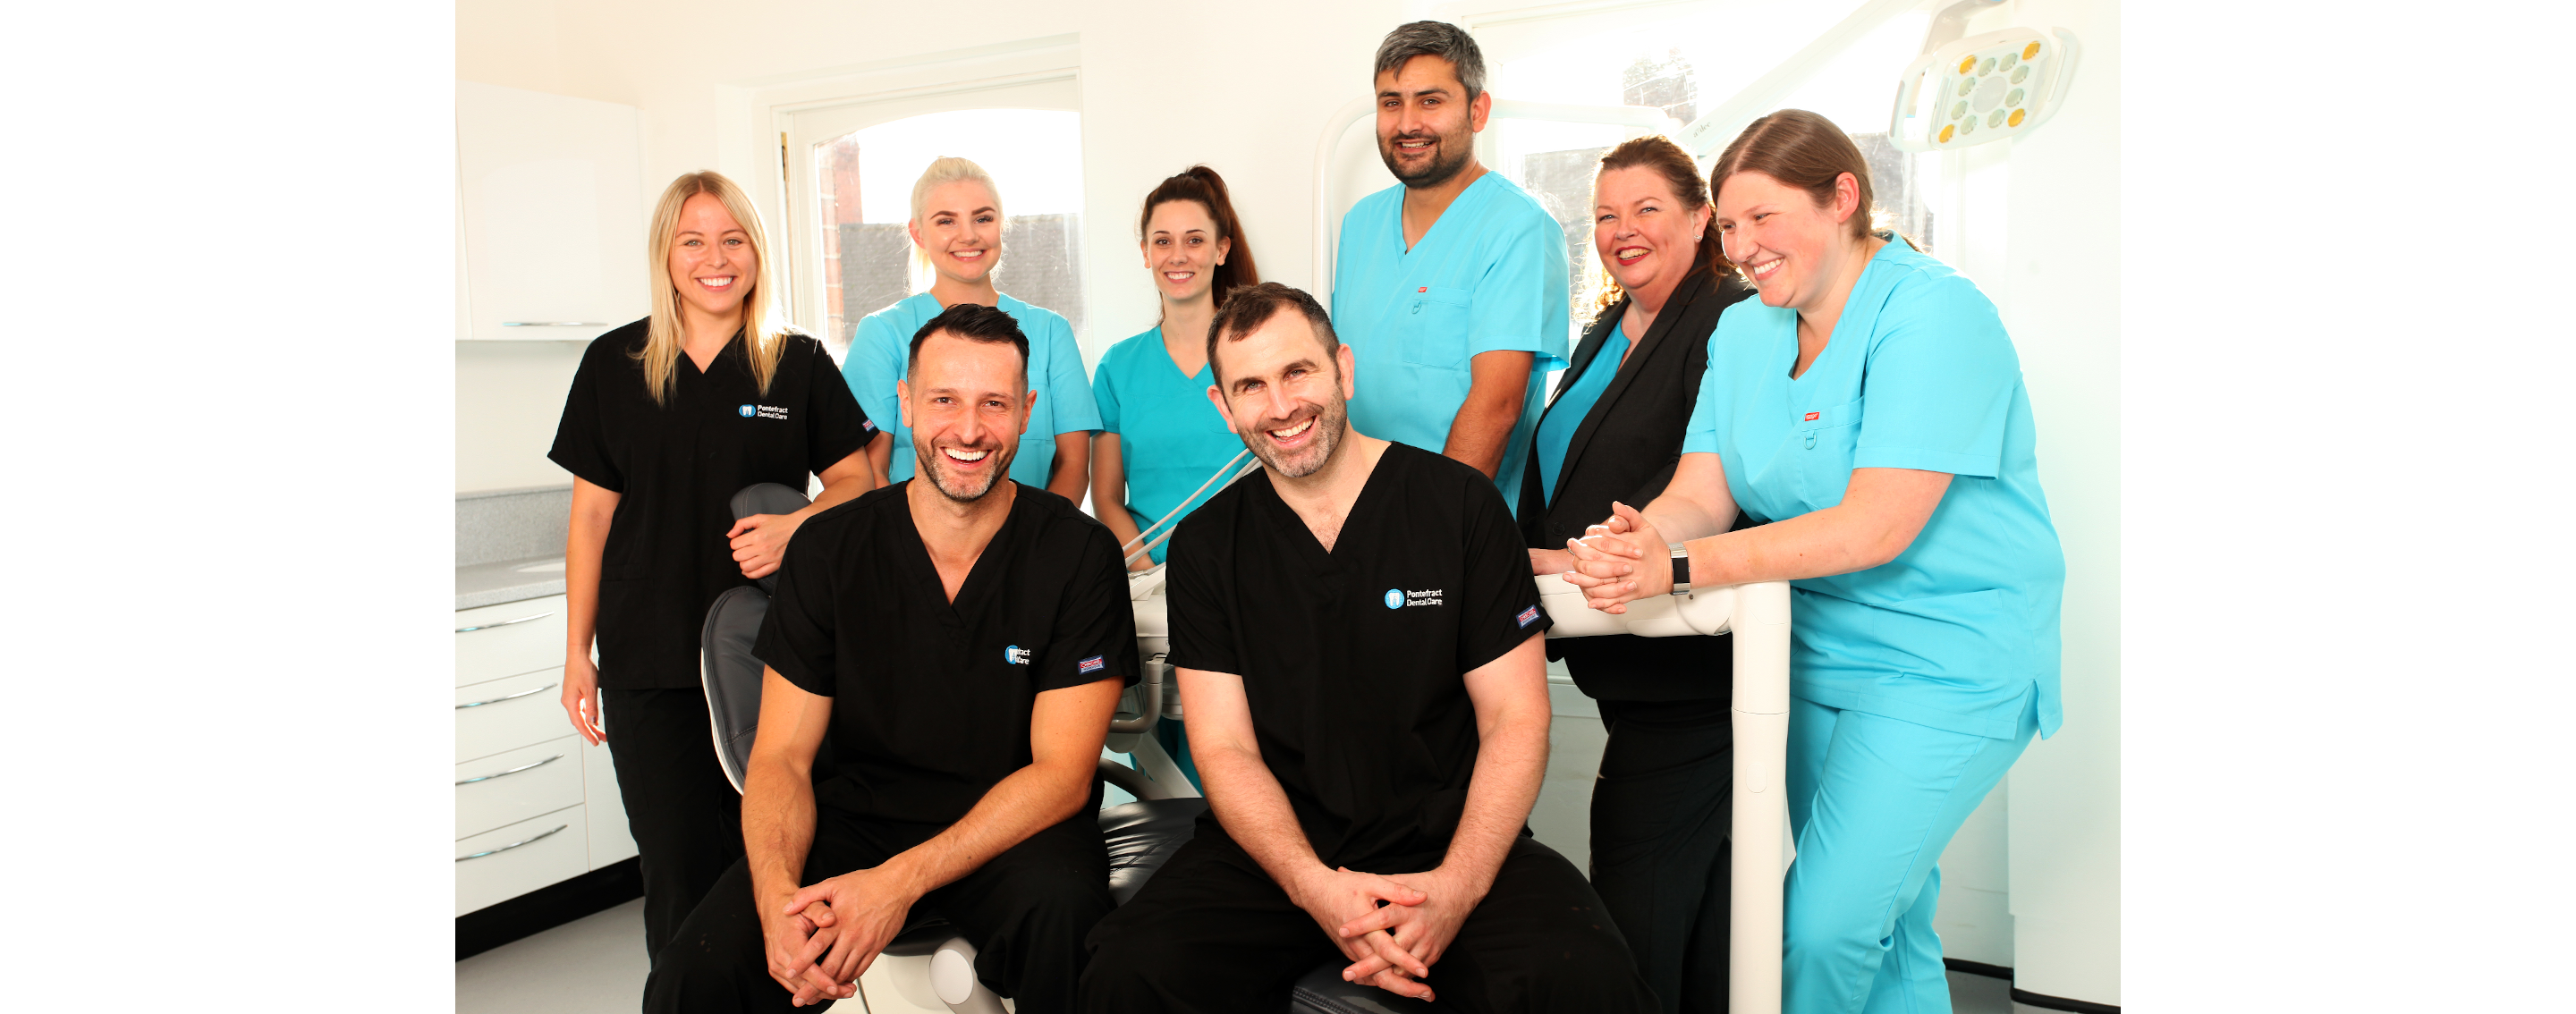 Pontefract dental care dentists and staff group photo